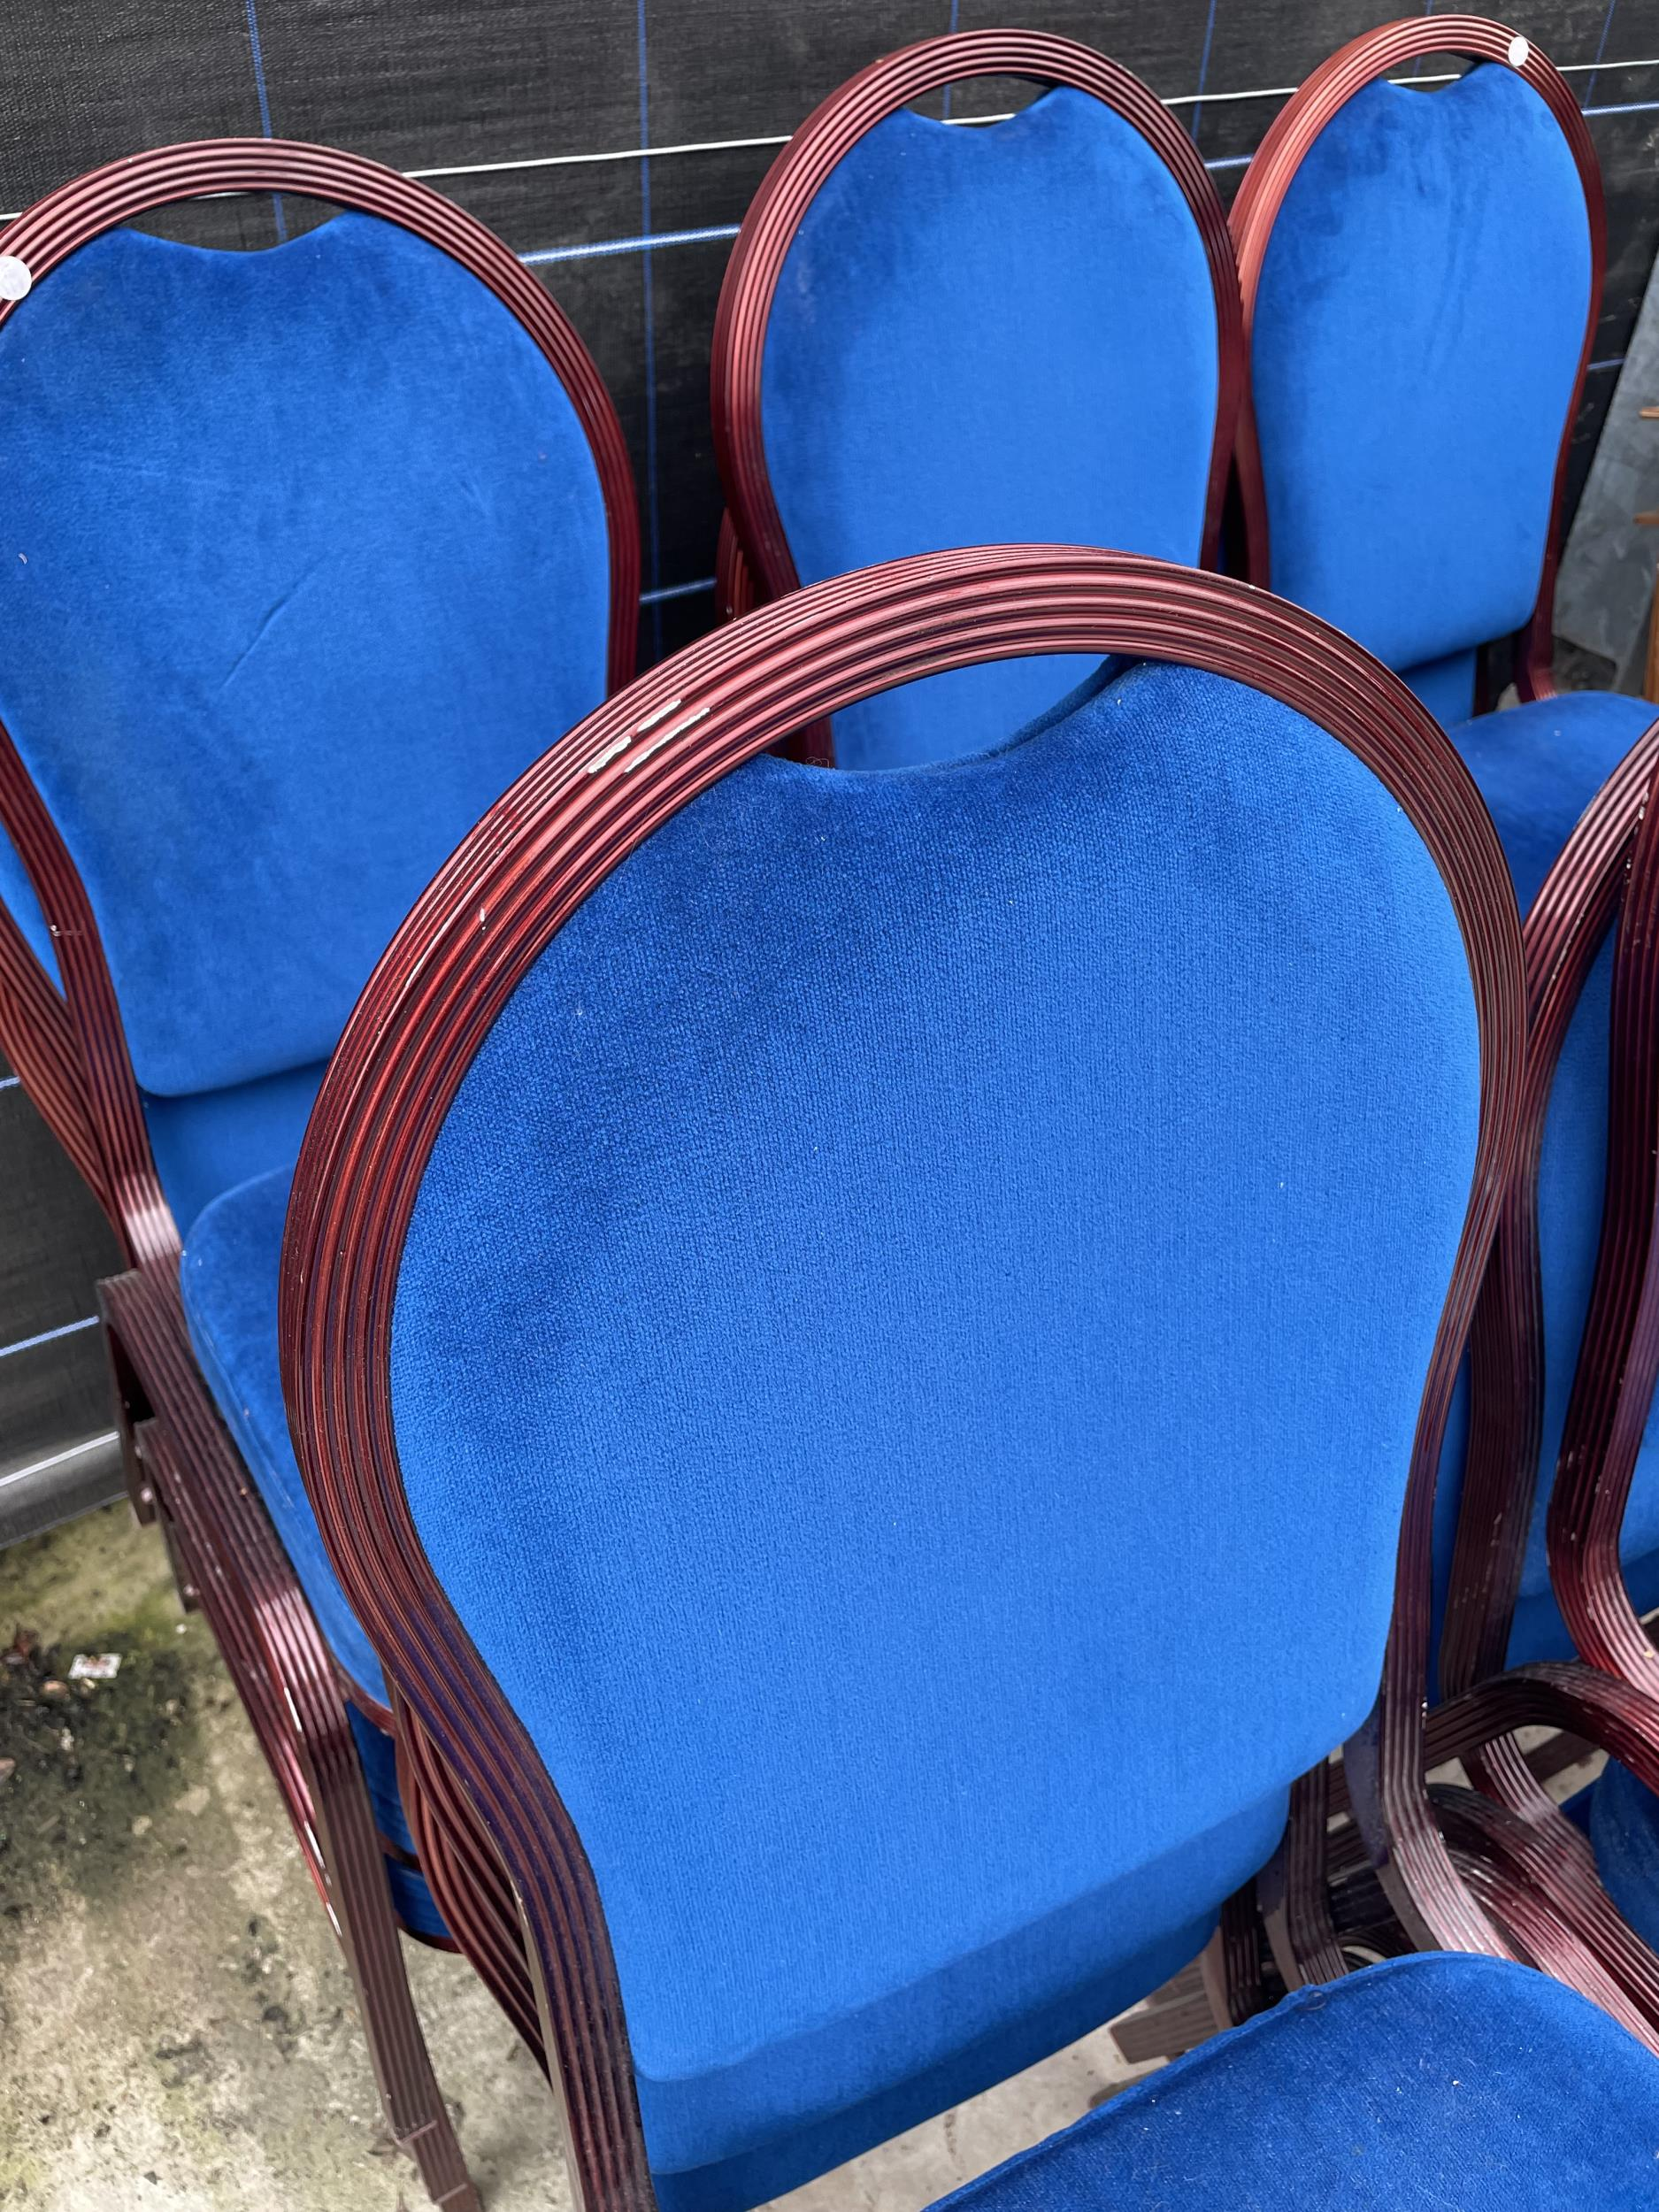 EIGHTEEN MODERN STACKING CHAIRS - Image 3 of 3